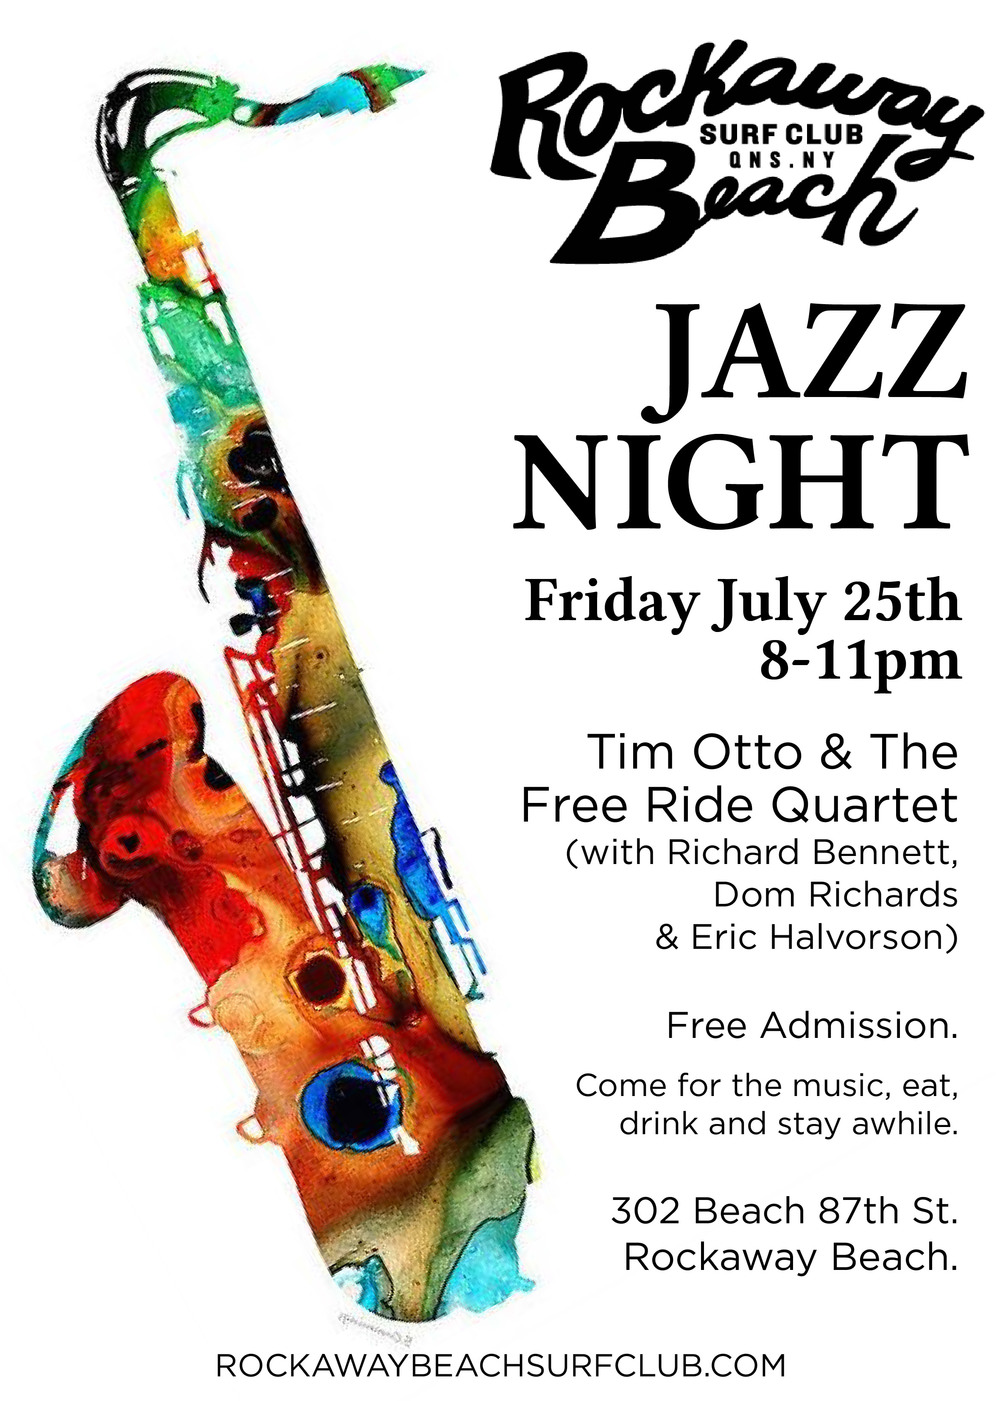 RBSC Jazz Night July 25th v2-01.jpg